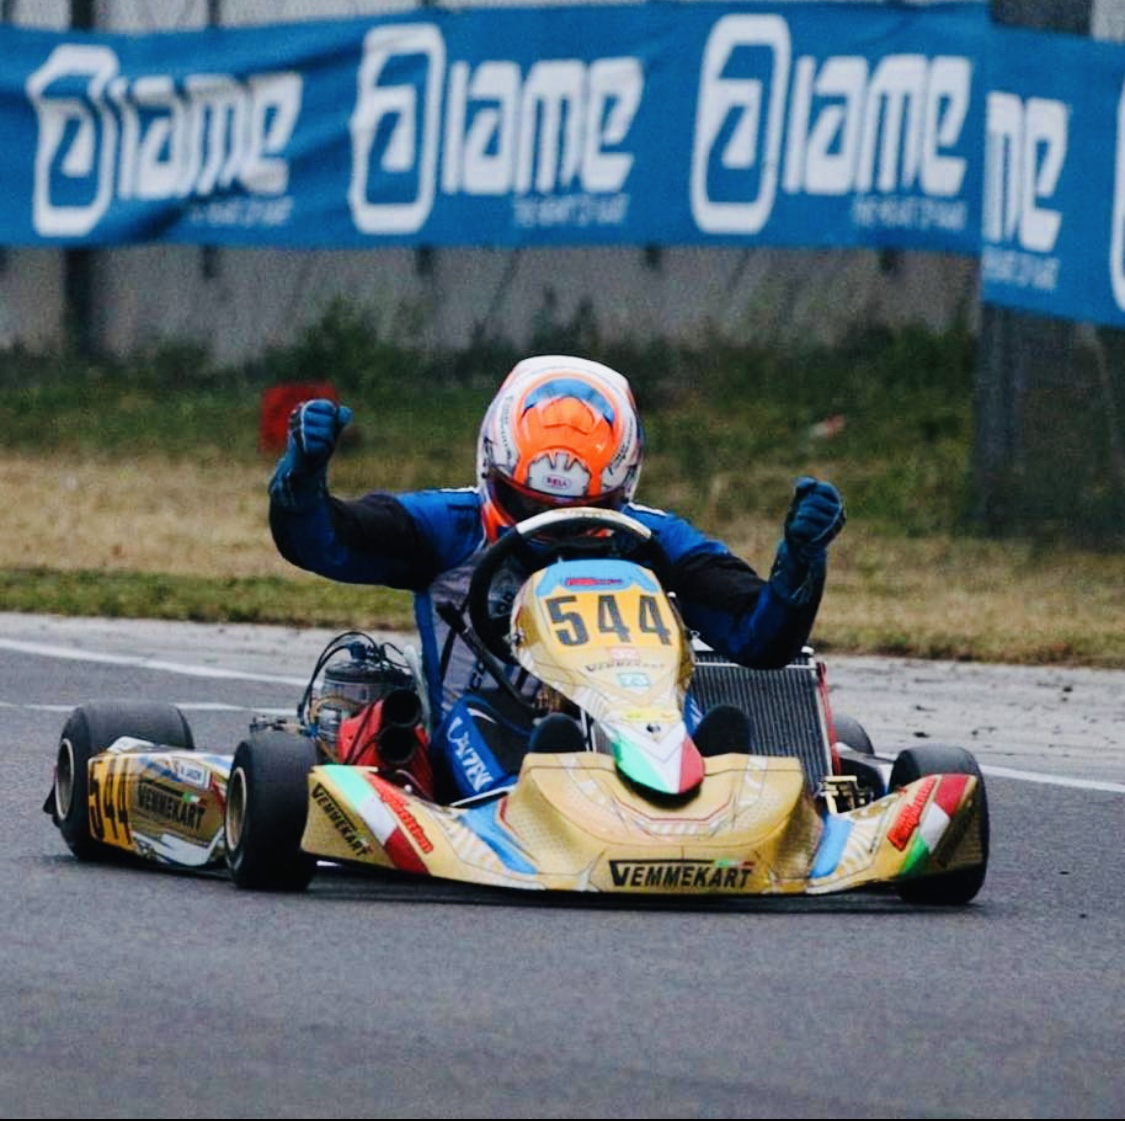 VemmeKart factory : announces the return of William Lanzeni to the KZ category.